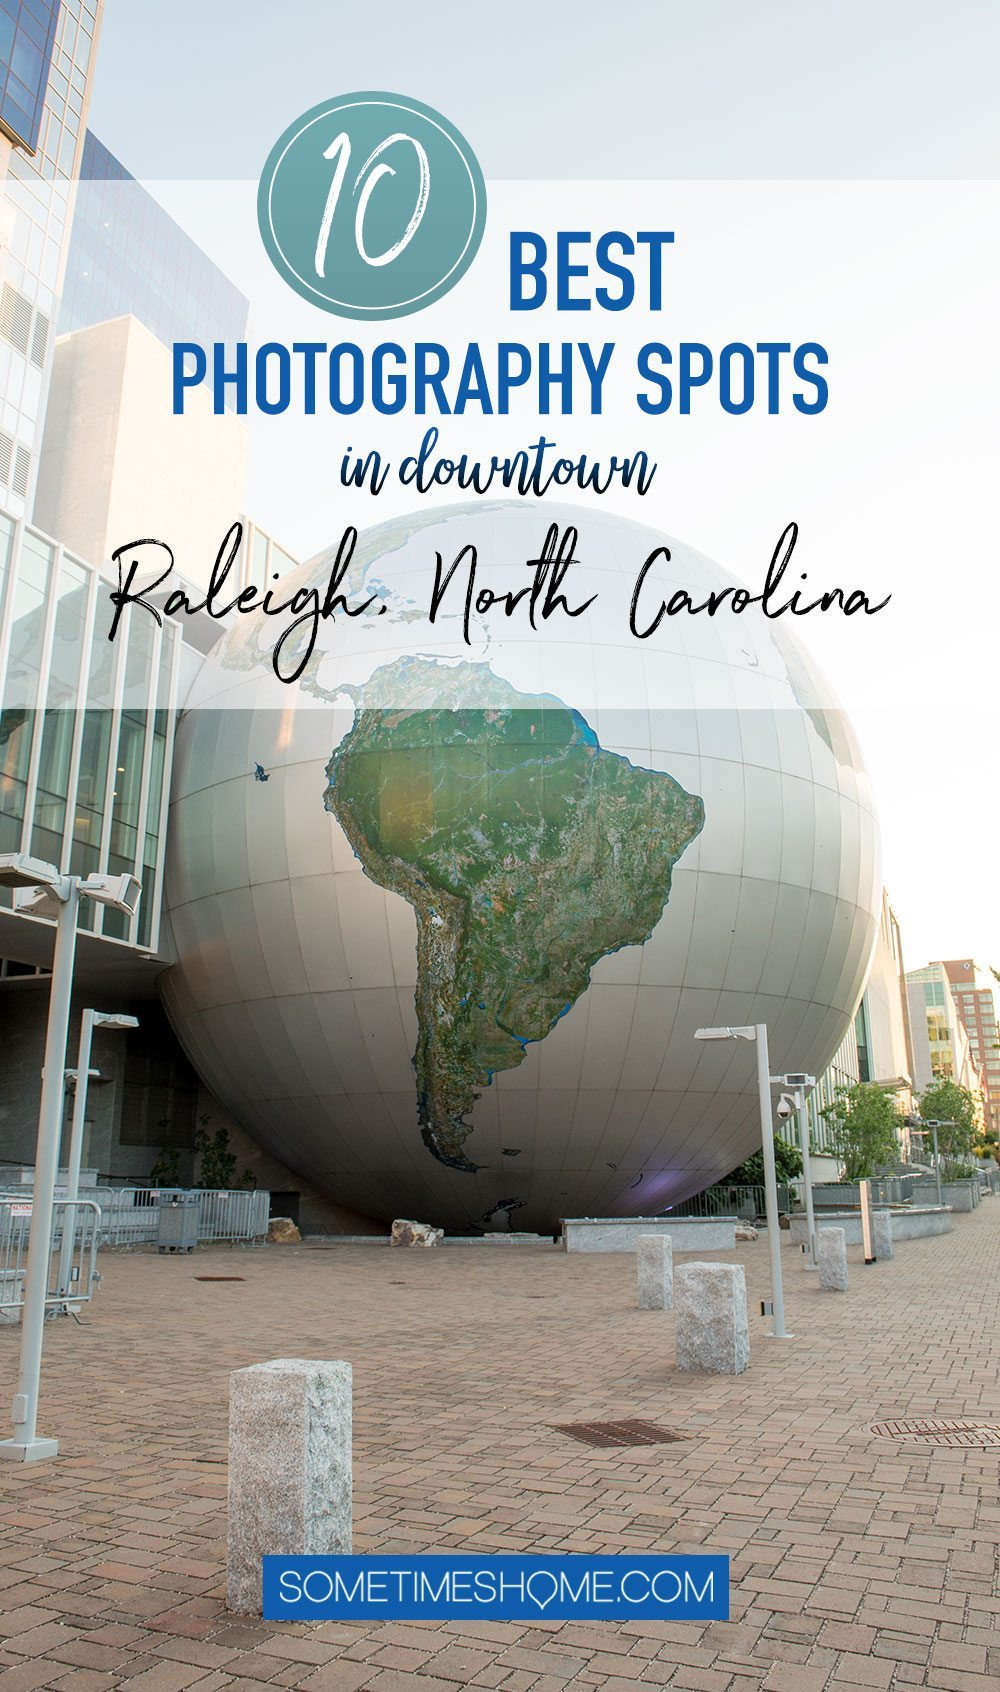 10 Best Downtown Raleigh Photography Spots on Sometimes Home travel blog.